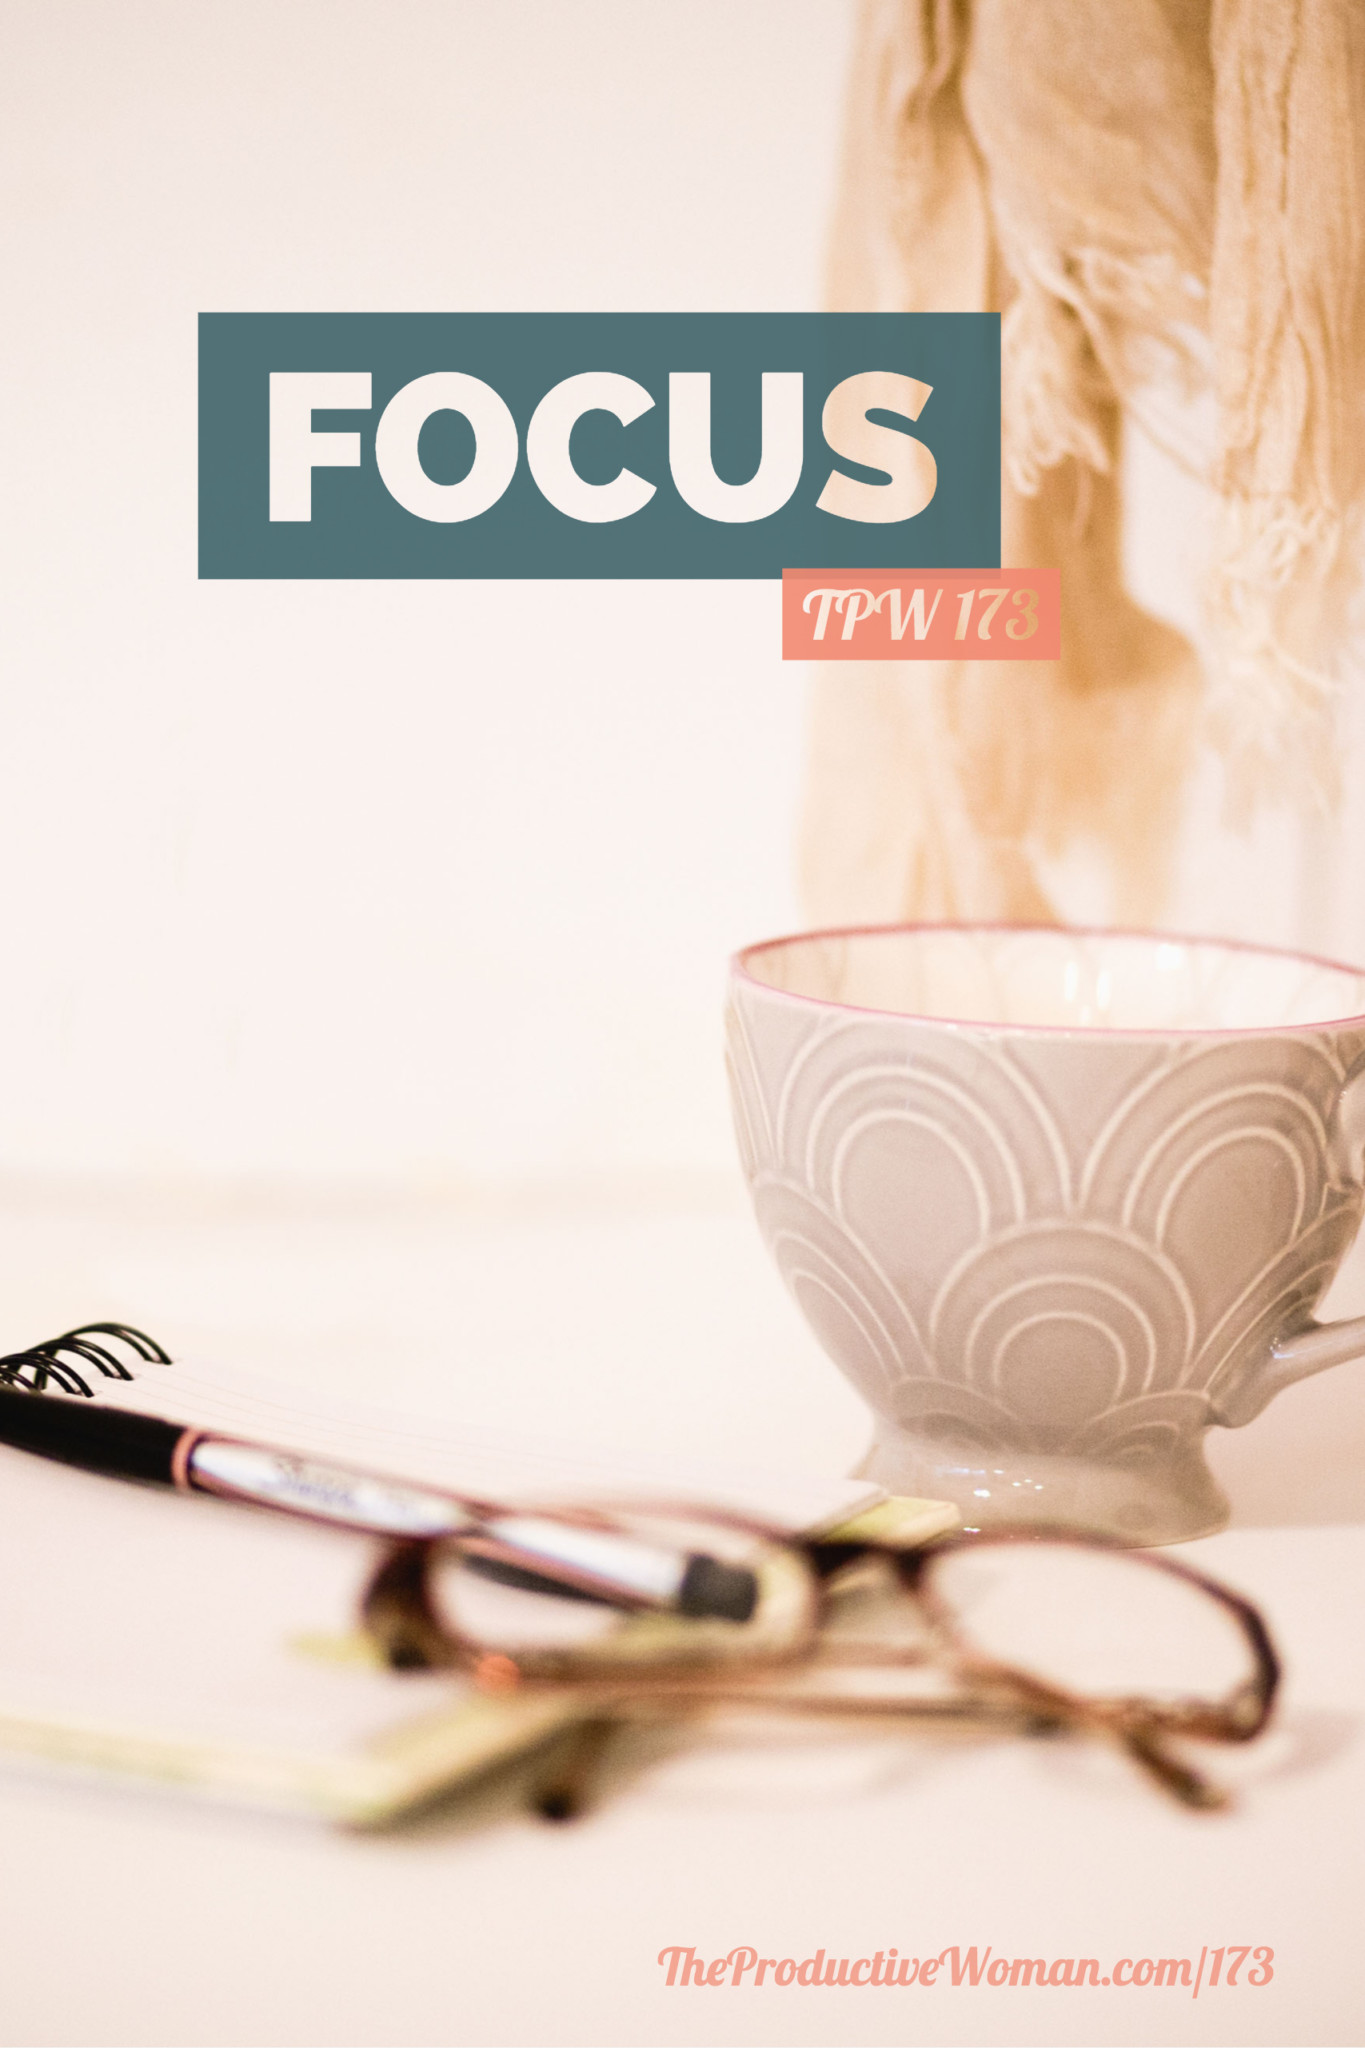 Episode 173 of The Productive Woman podcast takes a look at one of my words for 2018: focus. We consider why it matters, how it affects our productivity, what interferes with it, and how we can improve it. Find more at TheProductiveWoman.com/173.